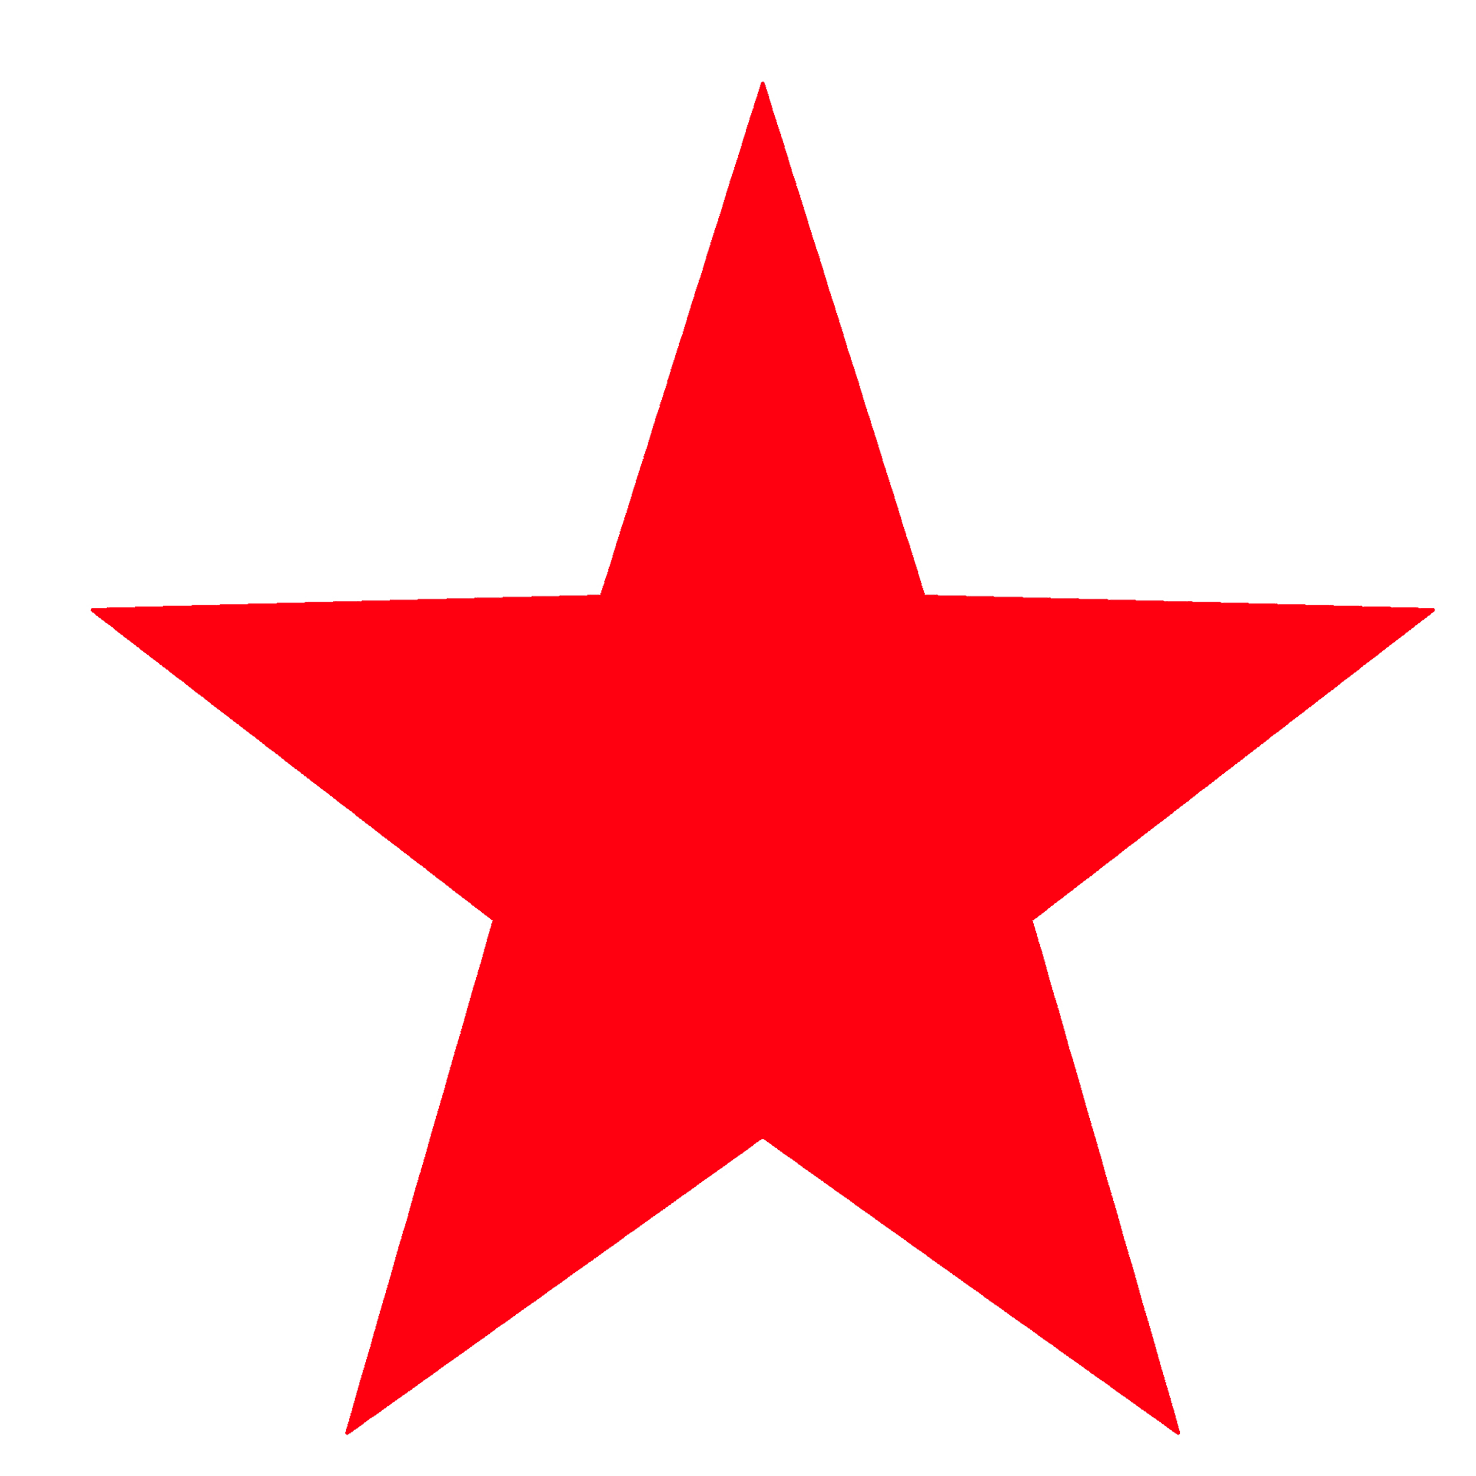 red star template